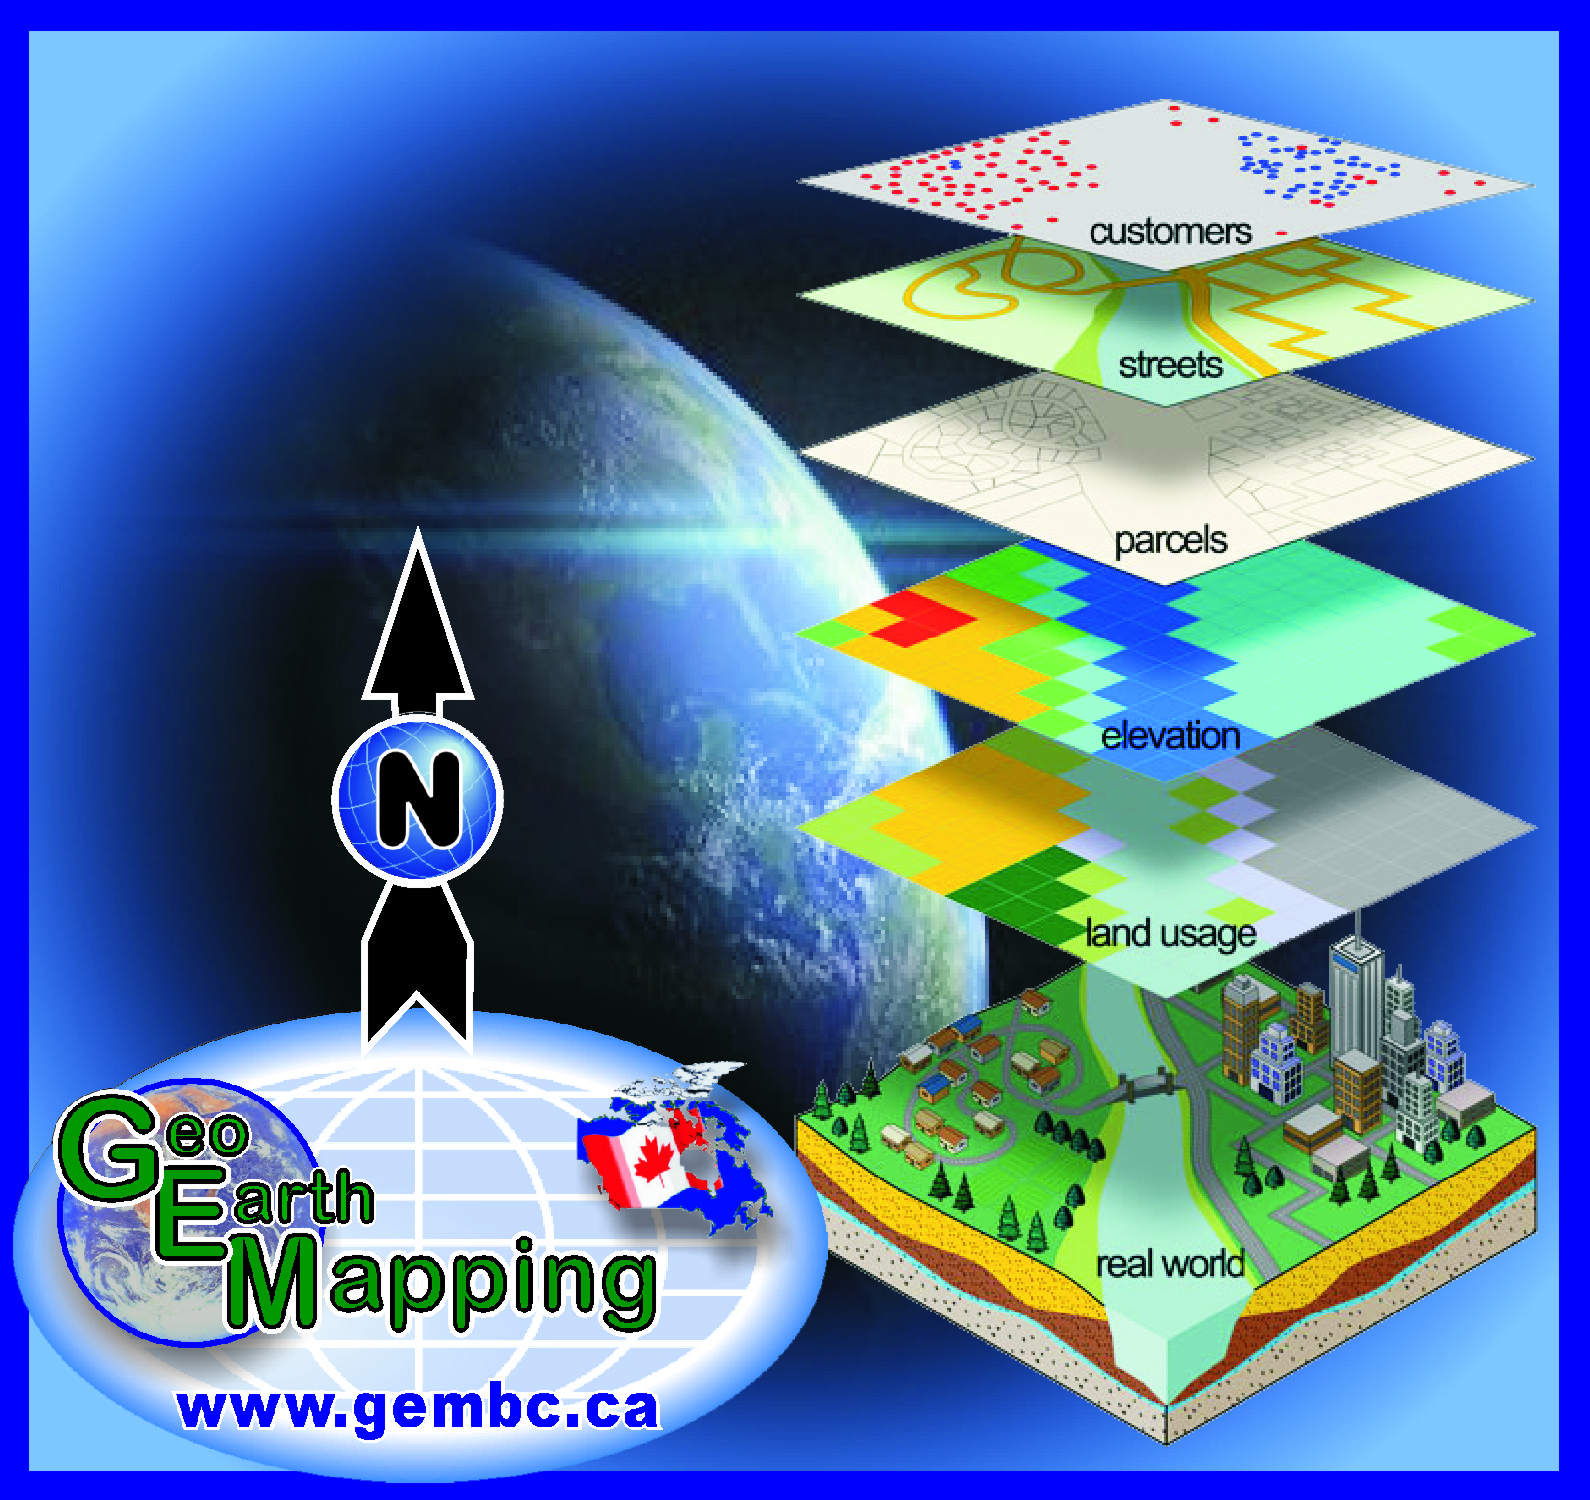 Geo Earth Mapping image 2